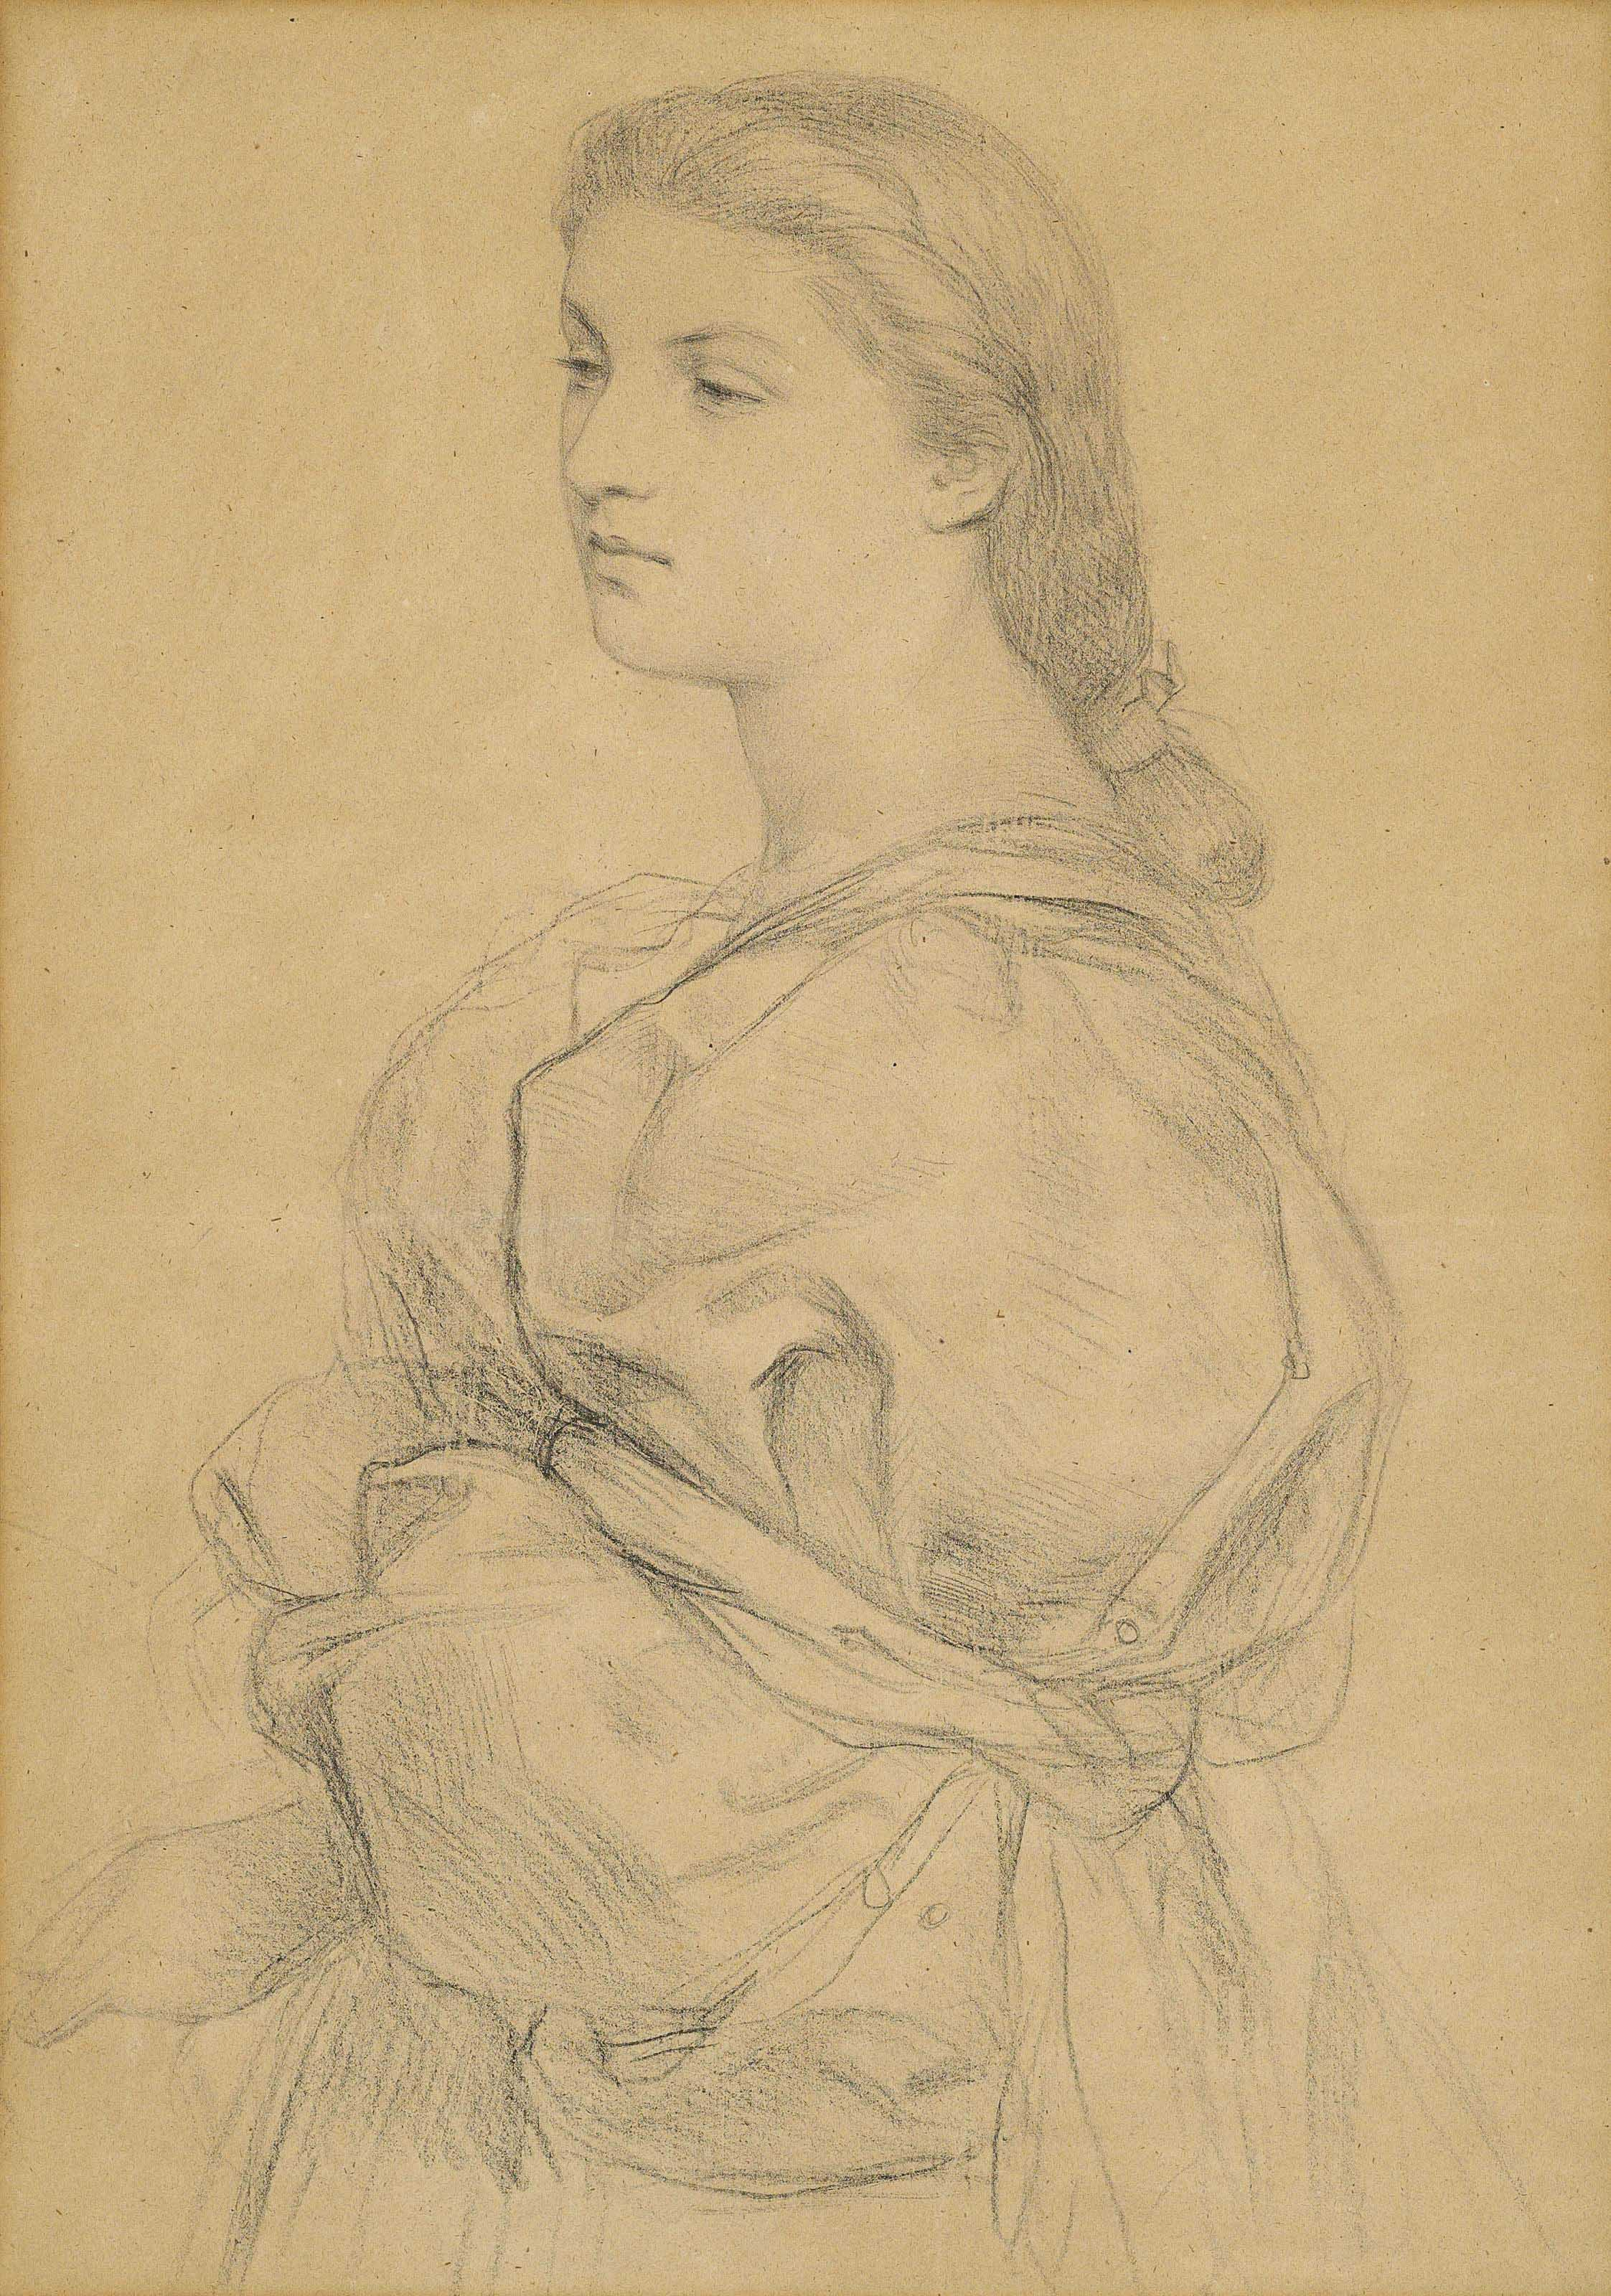 Portrait study of a young lady, half-length, facing to the left, probably for 'Cassandra Fedele'